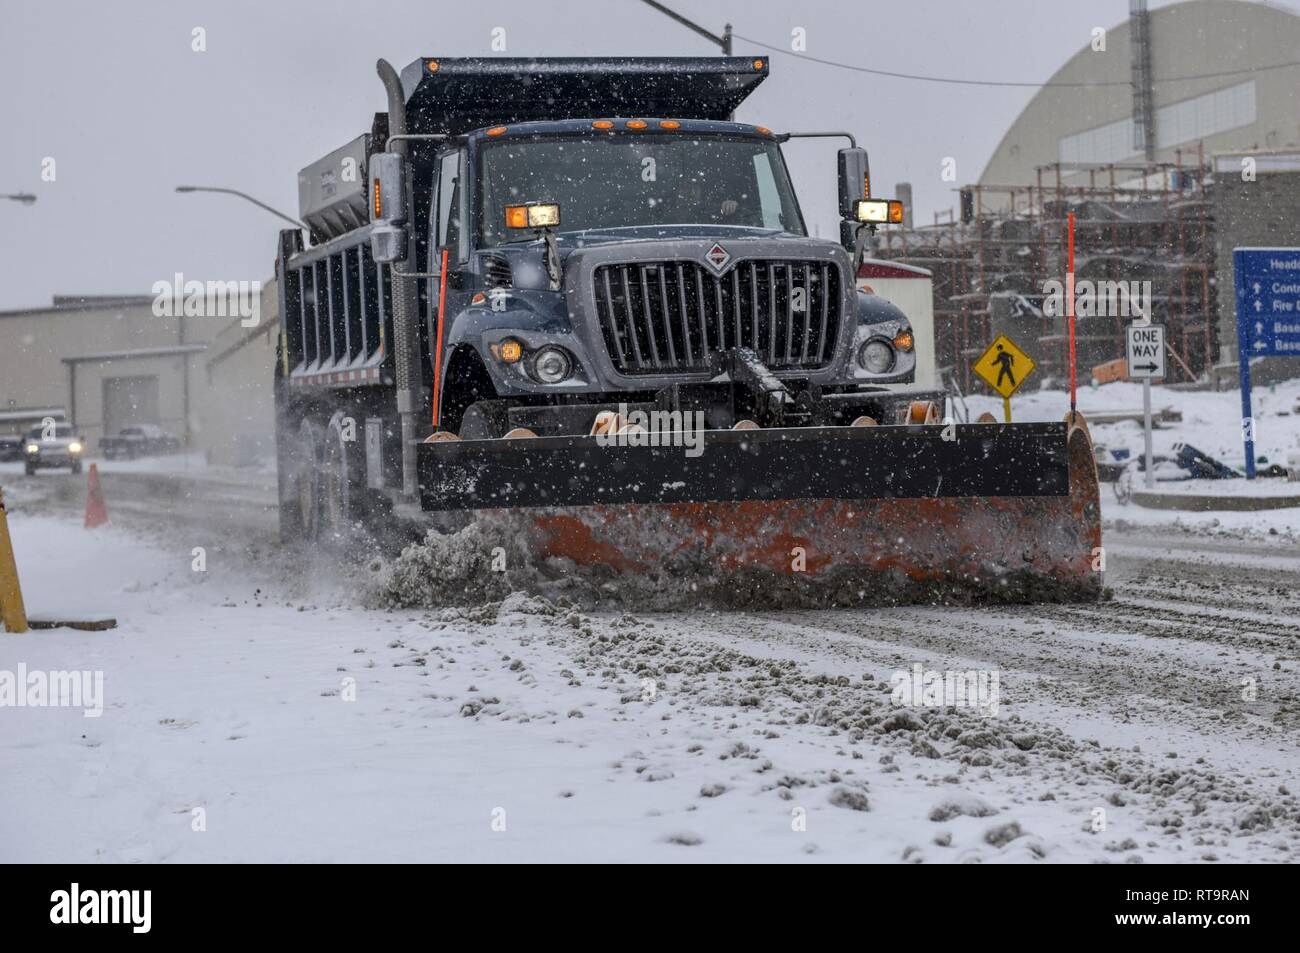 Tech. Sgt. Jason Nelson of the 171st Air Refueling Wing, Civil Engineer Squadron plows the snow to clear the roads during this mornings snowfall near Pittsburgh, Feb. 1, 2019. Nelson spent most of his morning making sure all commercial vehicles had clear, safe roads to travel on. Stock Photo